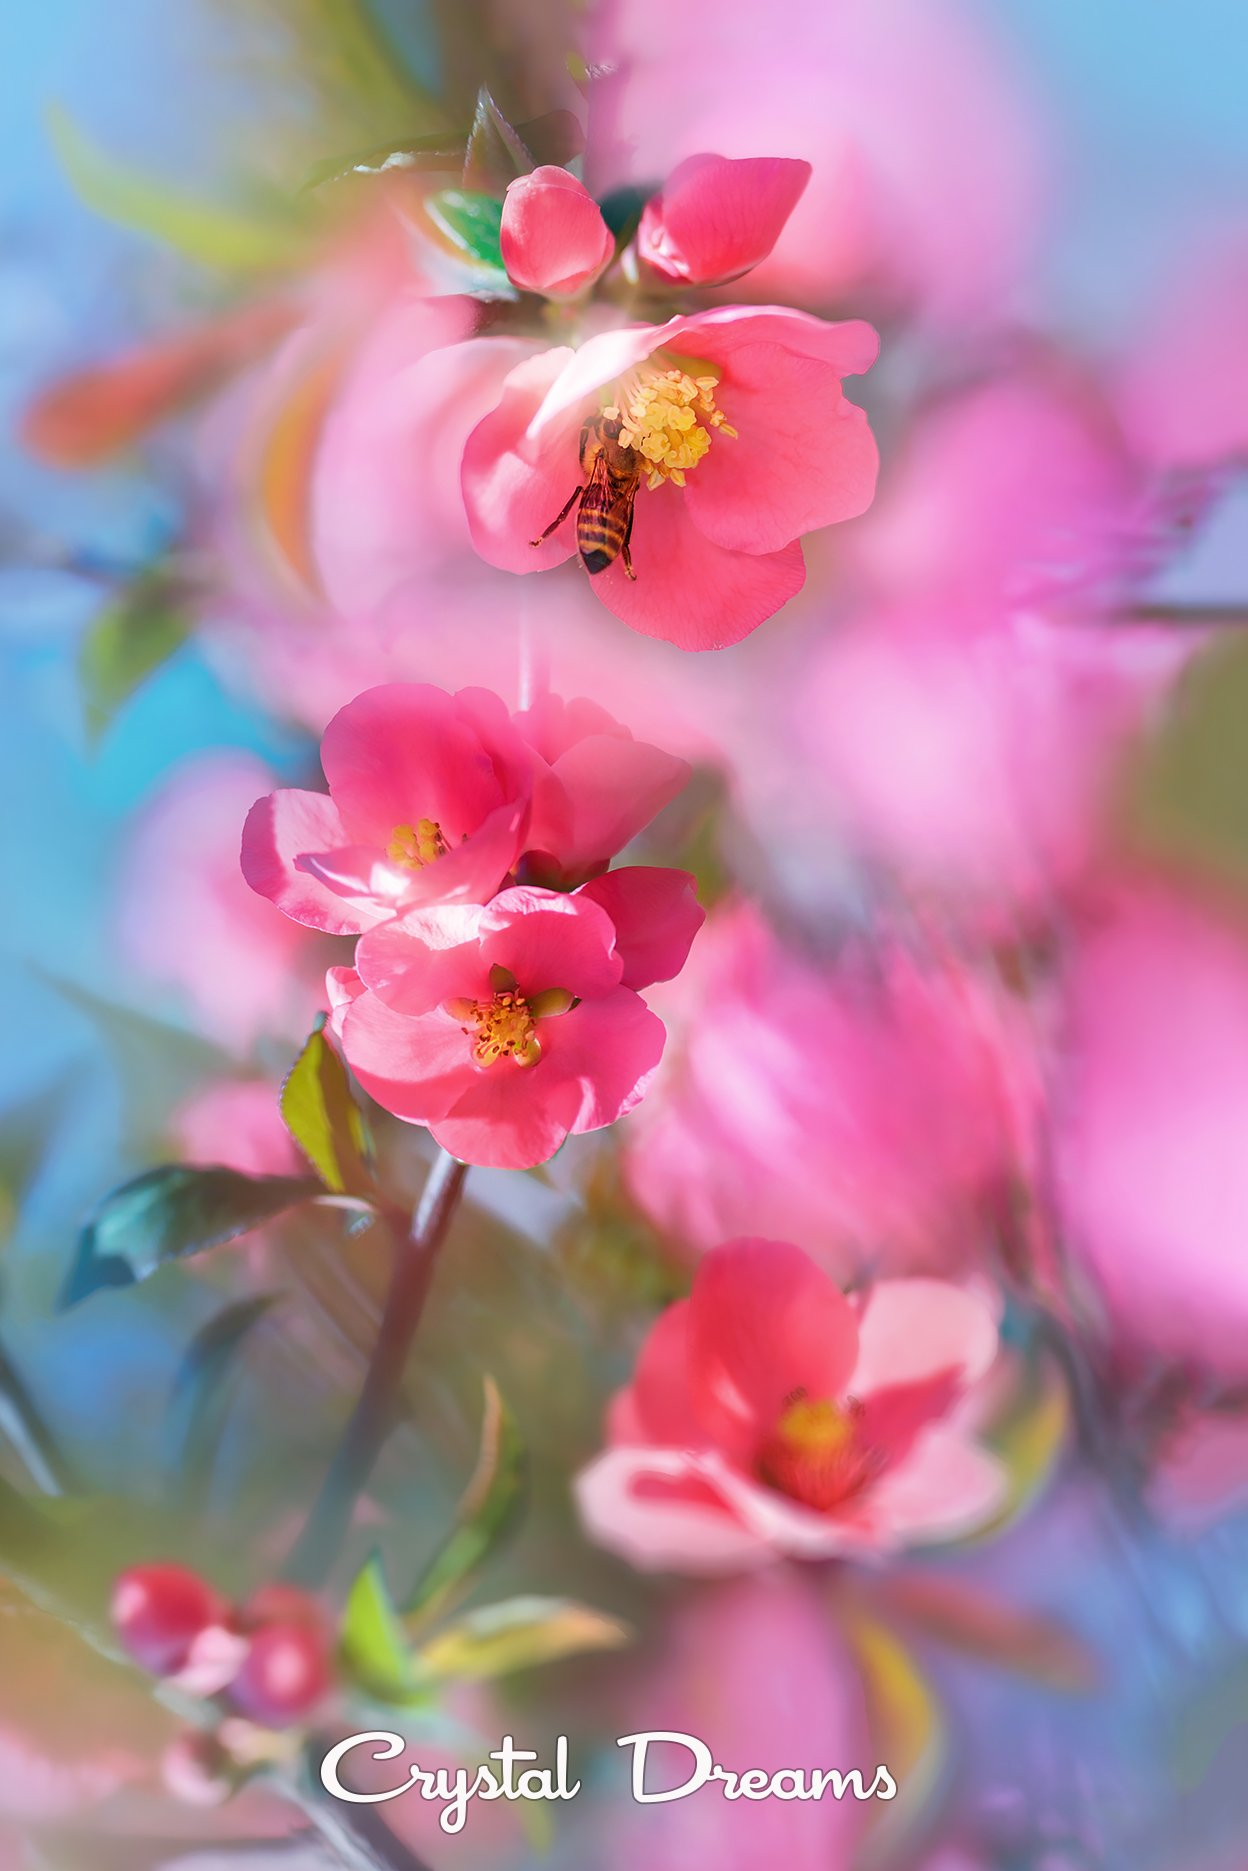 crystal dreams, macro, spring, color, art, nature, bee, Крылова Татьяна